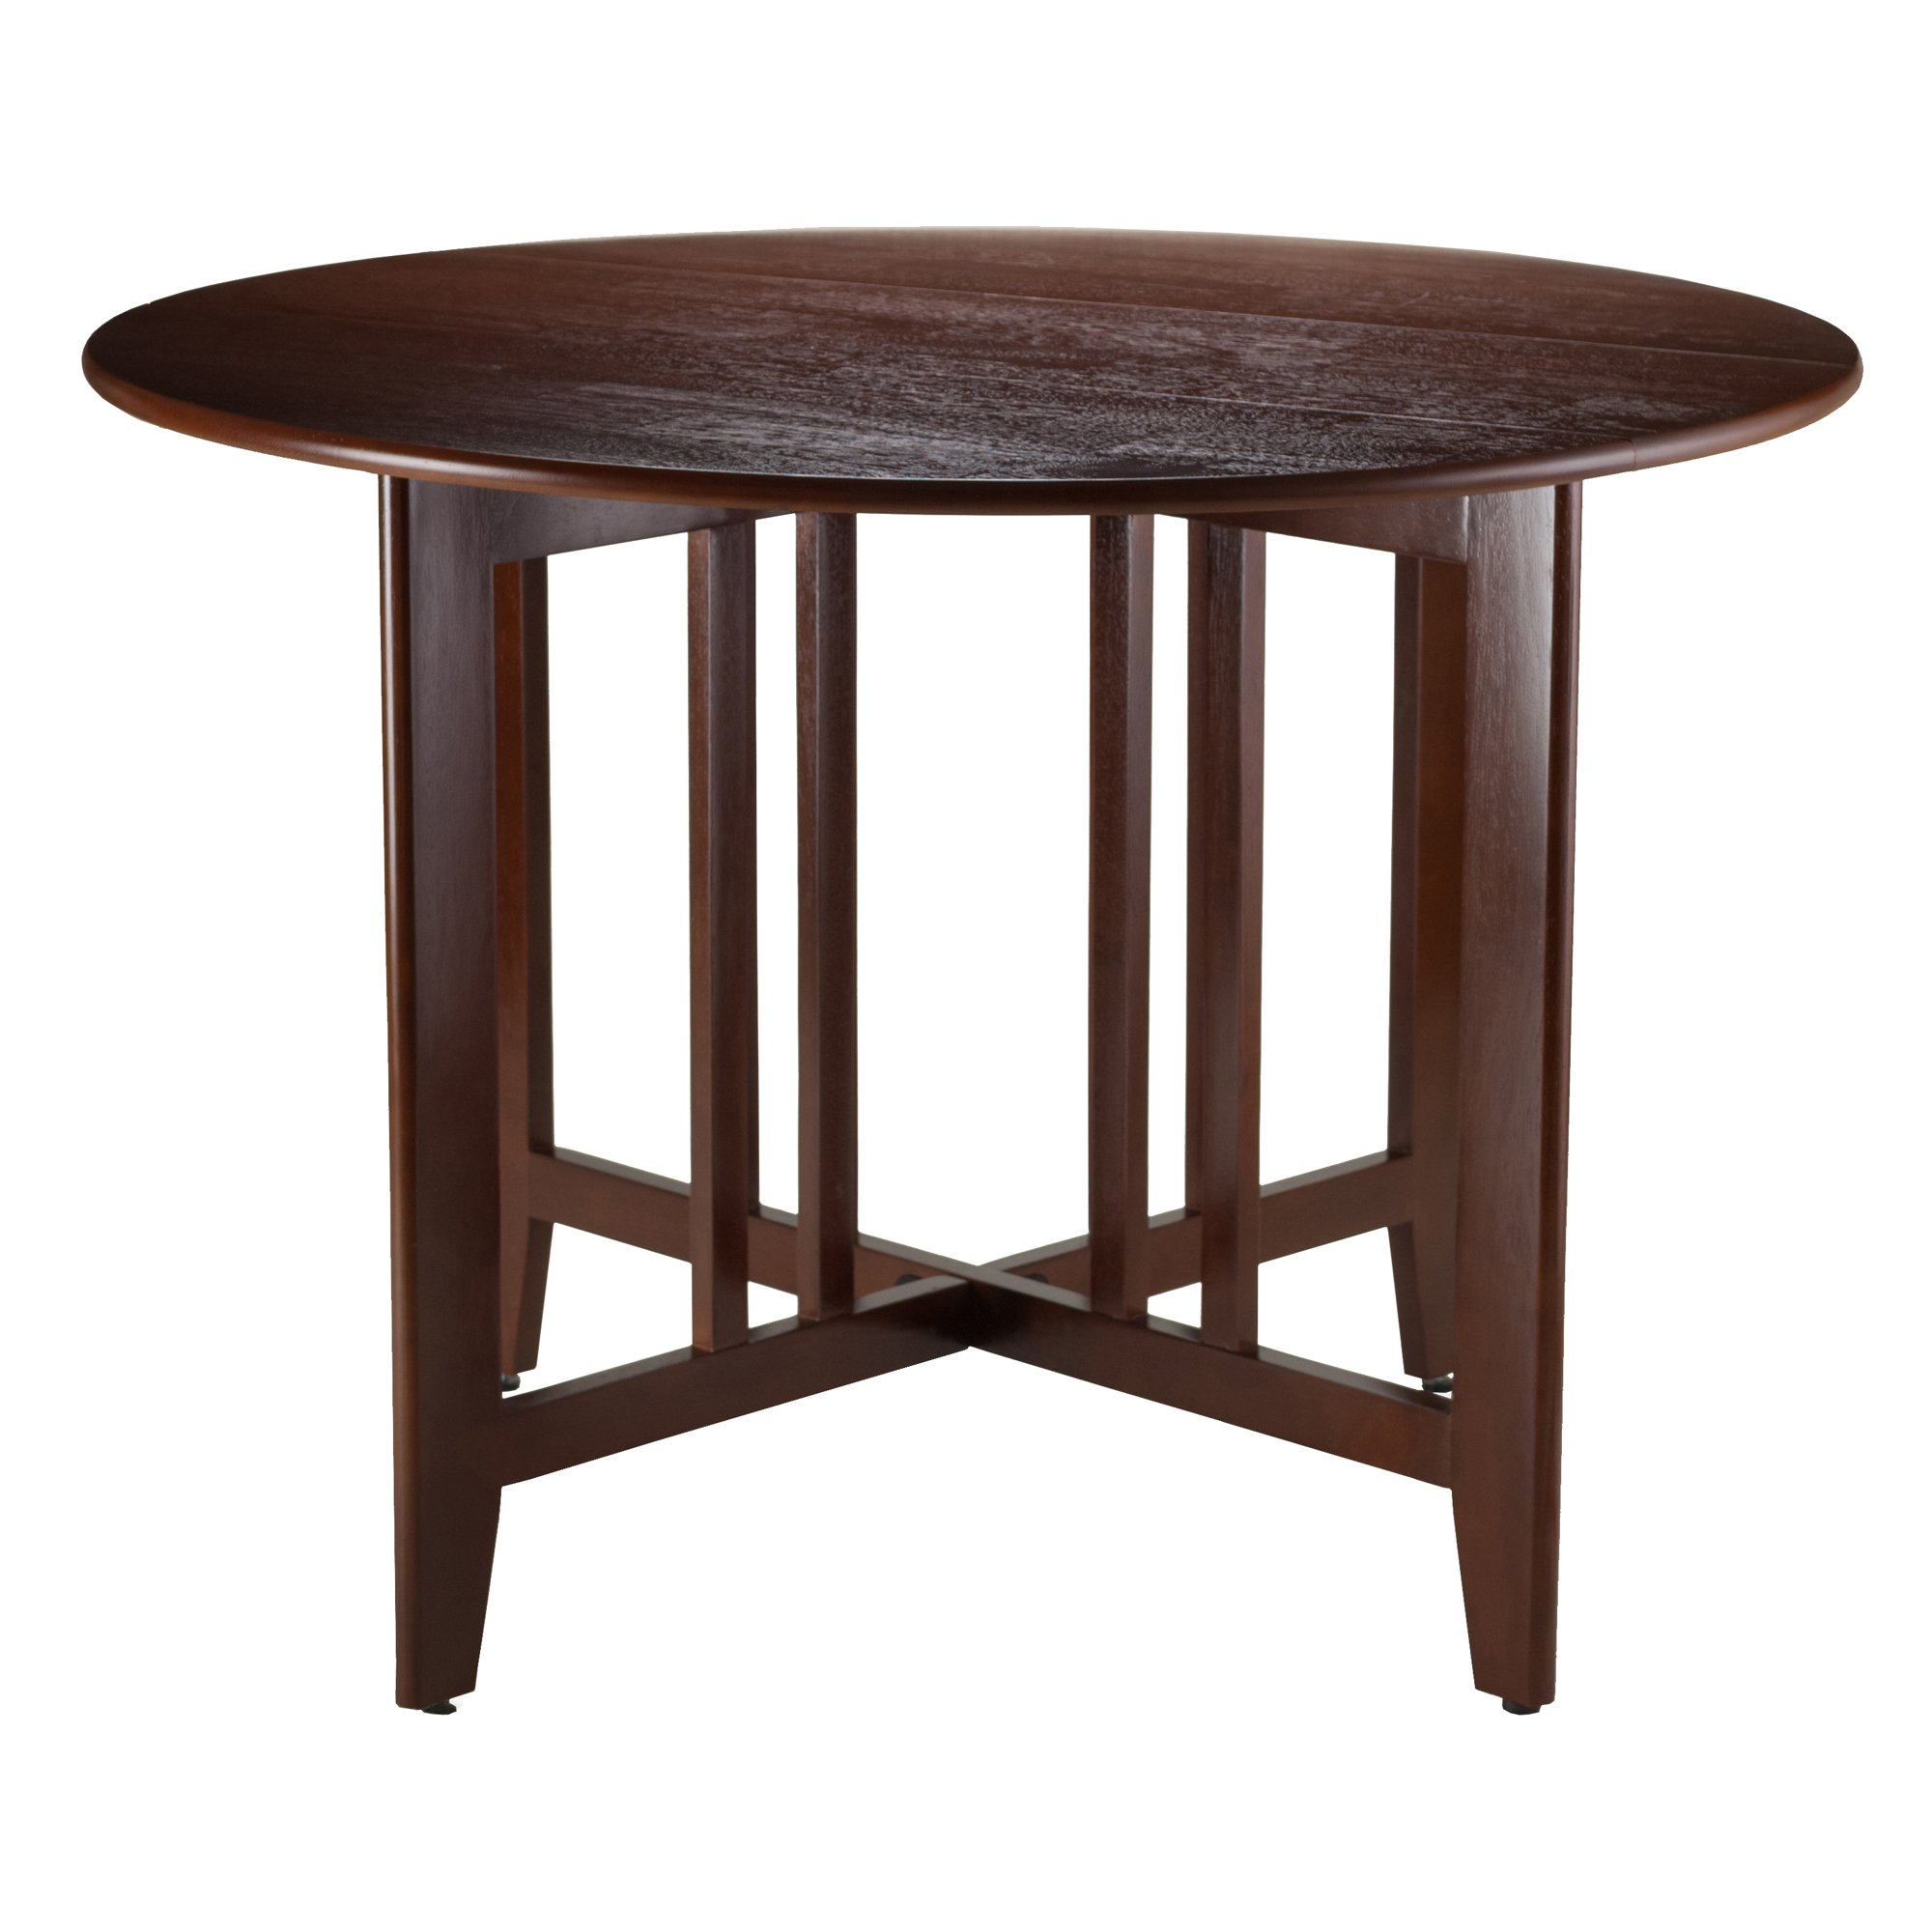 Winsome Wood Alamo, 94142, Double Drop Leaf, Round Table Mission, Walnut, 42-Inch by Winsome Wood